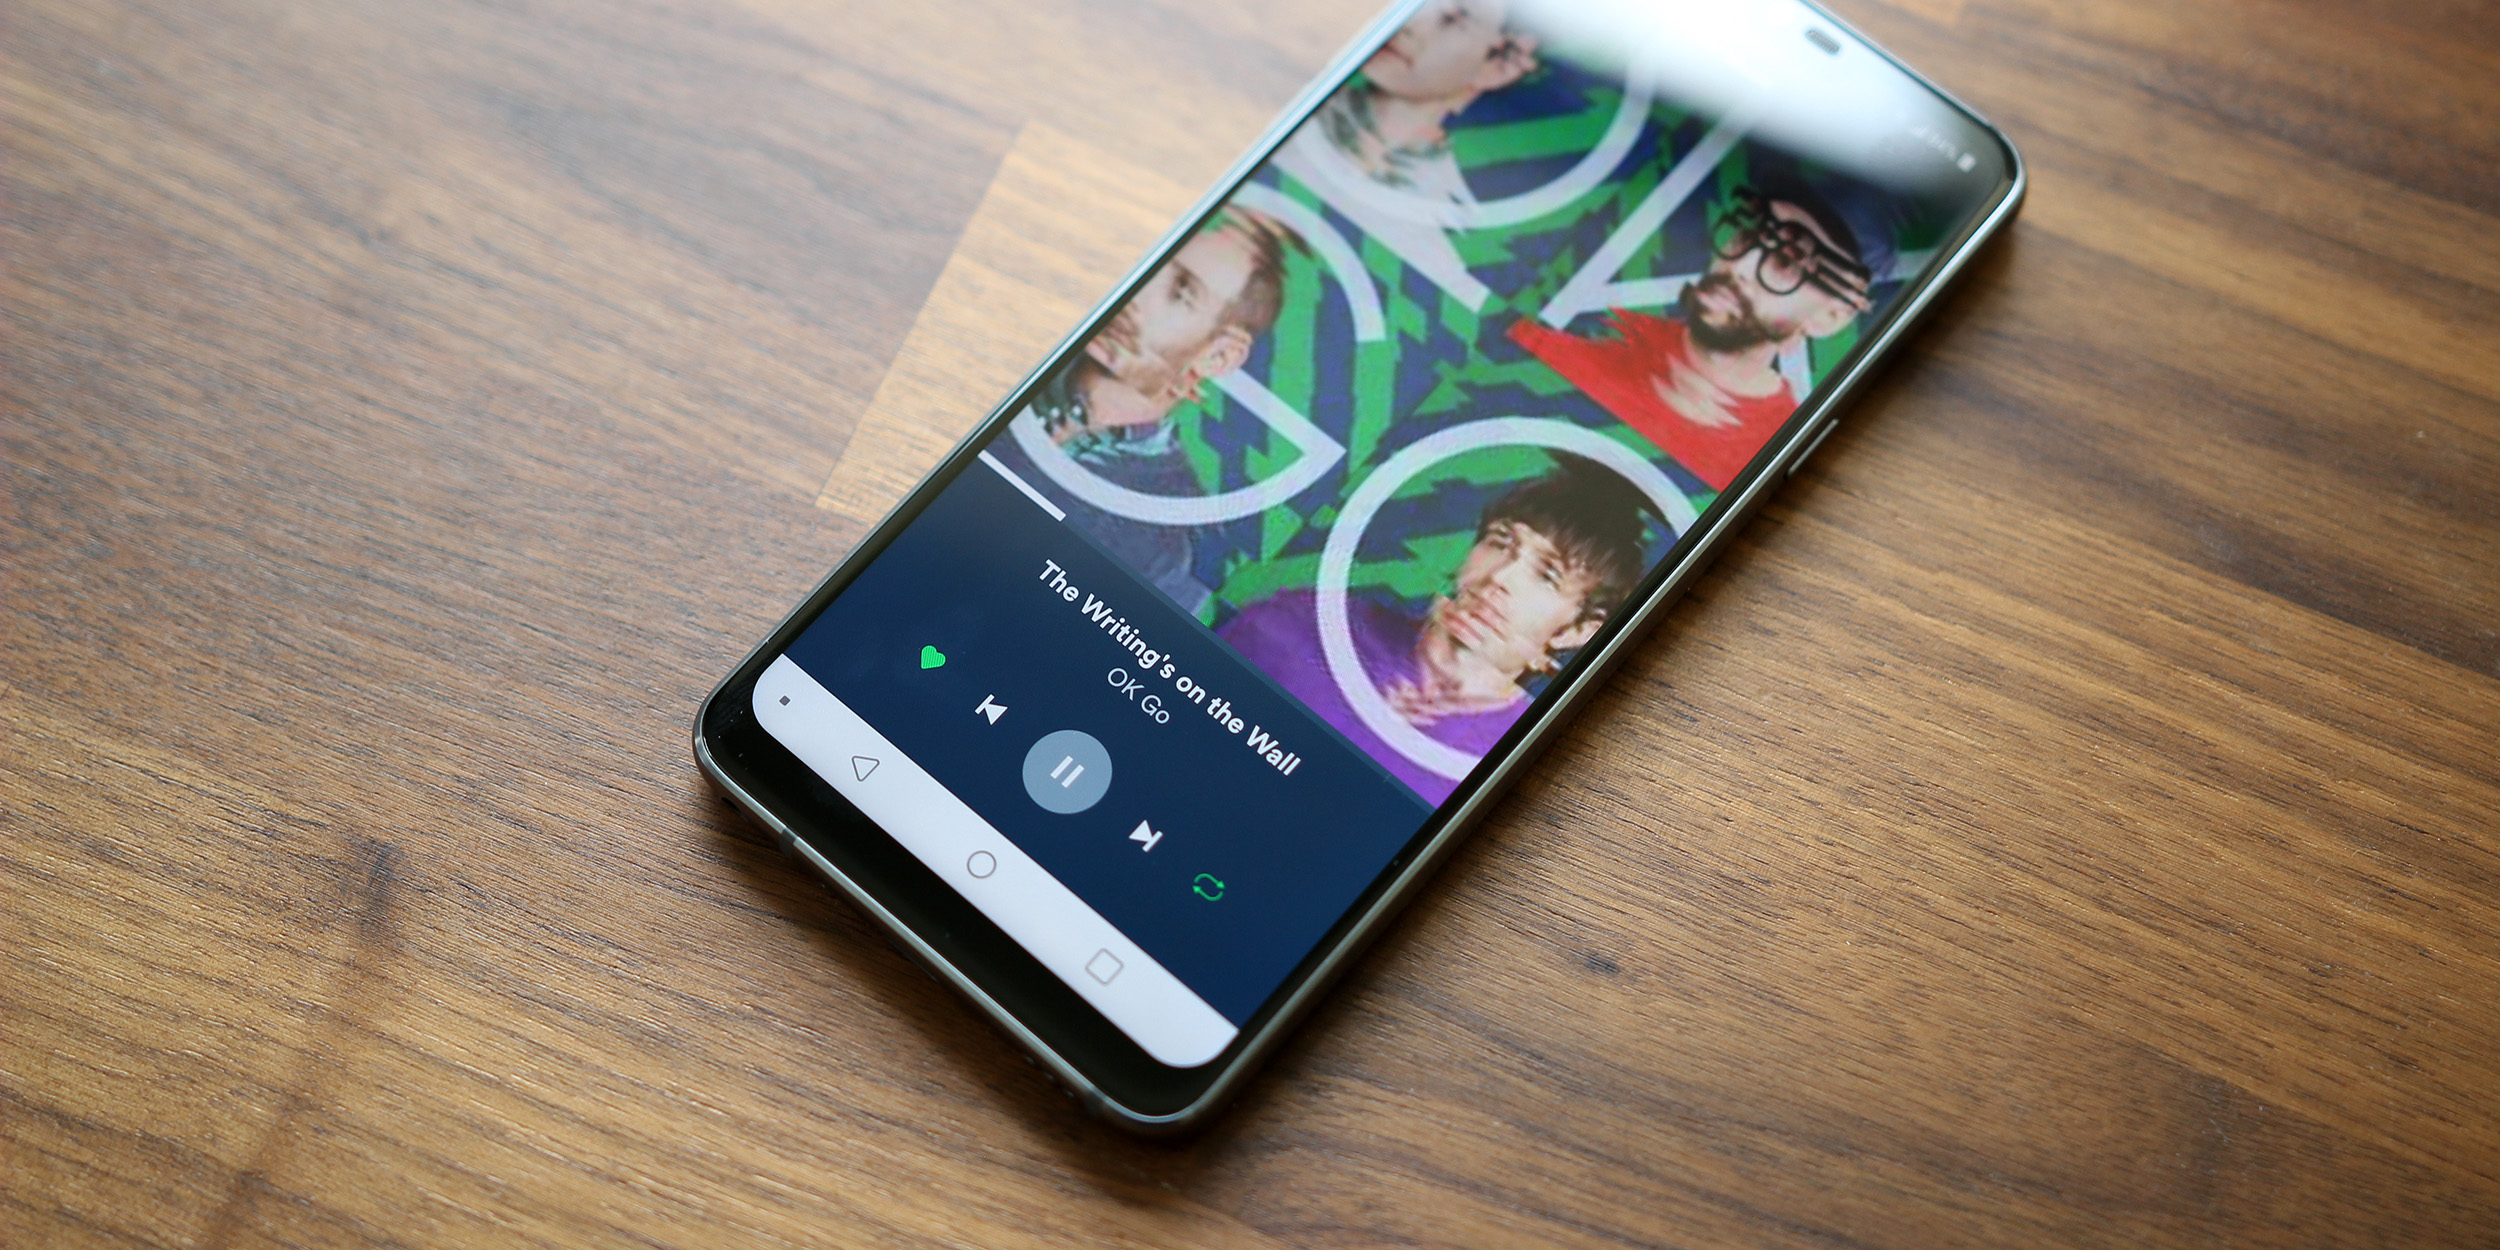 android data com spotify mobile android ui